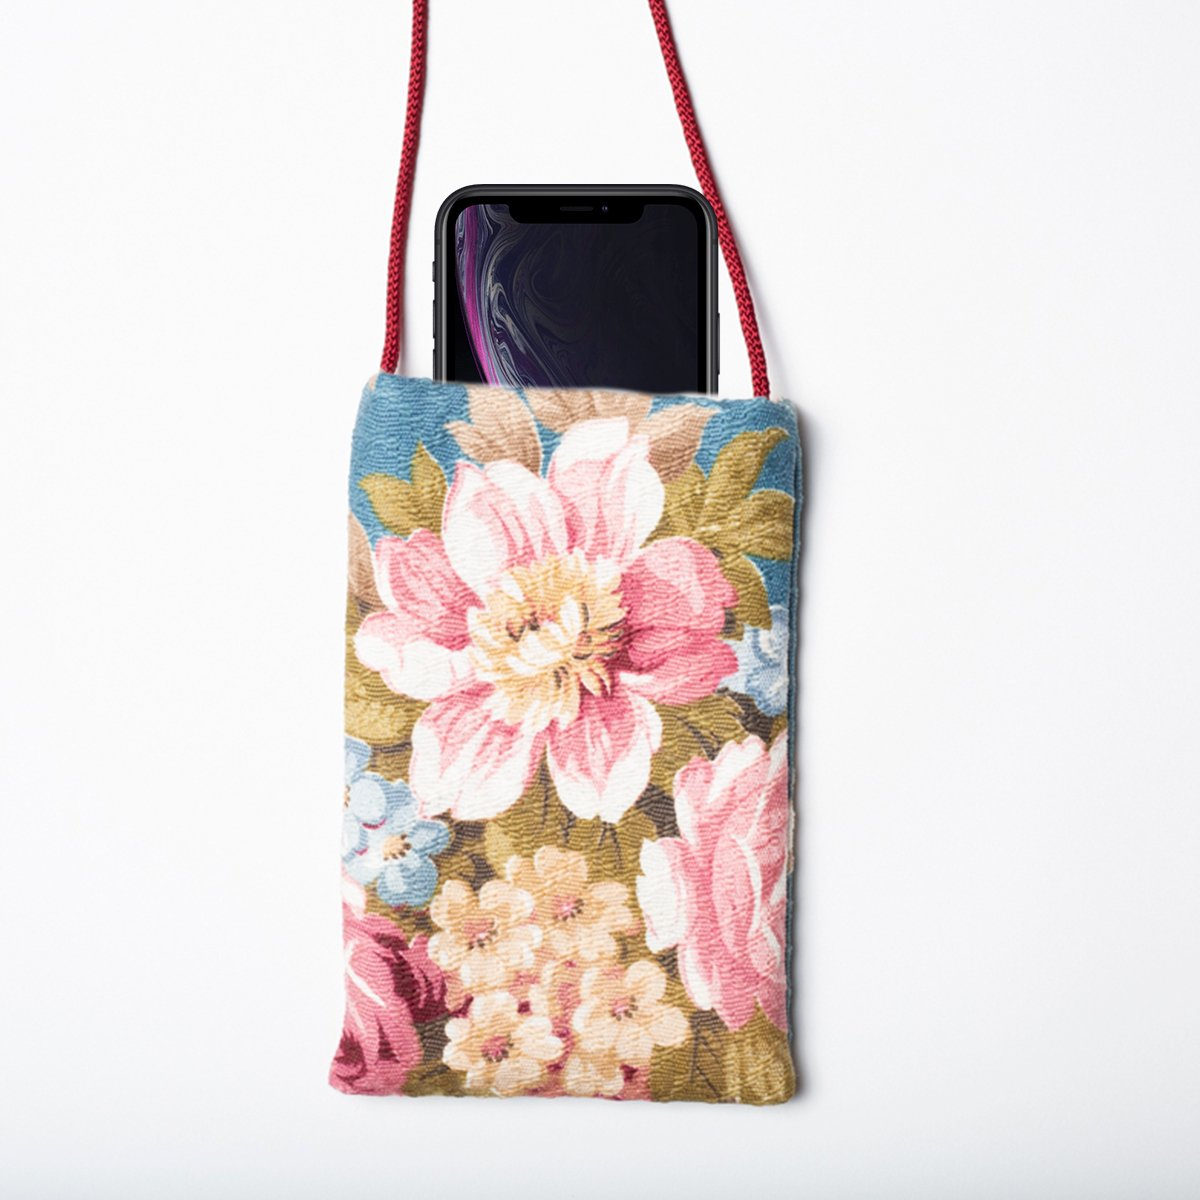 Cellphone Bag Floral Motif Teal